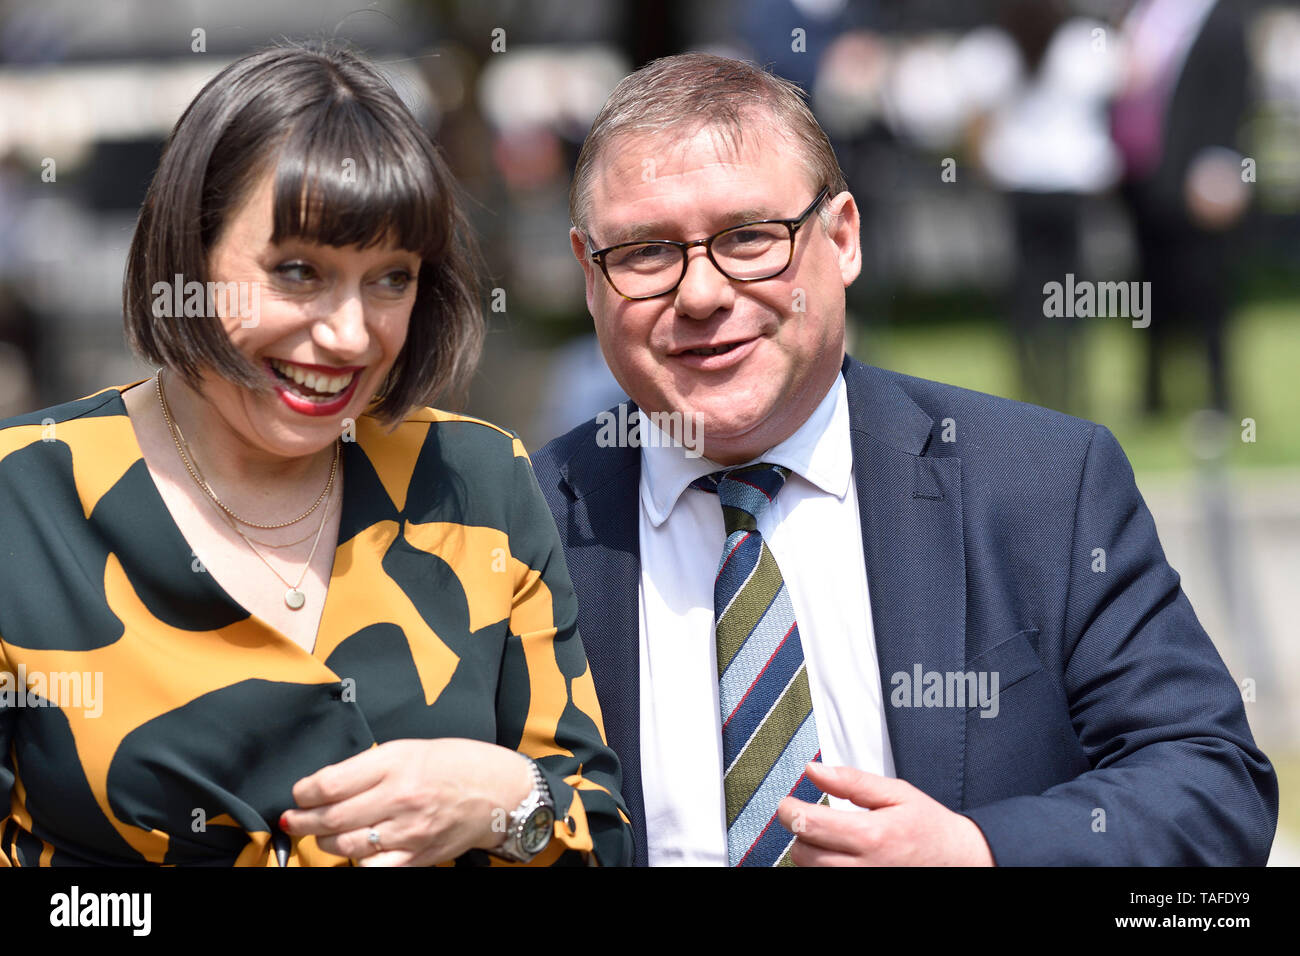 London, UK. 24 May 2019. Politicians of all parties are interviewed on College Green, Westminster, on the day Theresa May announces she will step down as Prime Minister on Juns 7th. Marck Francois MP (Con: Rayleigh and Wickford) with Sky News' Beth Rigby Credit: PjrFoto/Alamy Live News Stock Photo